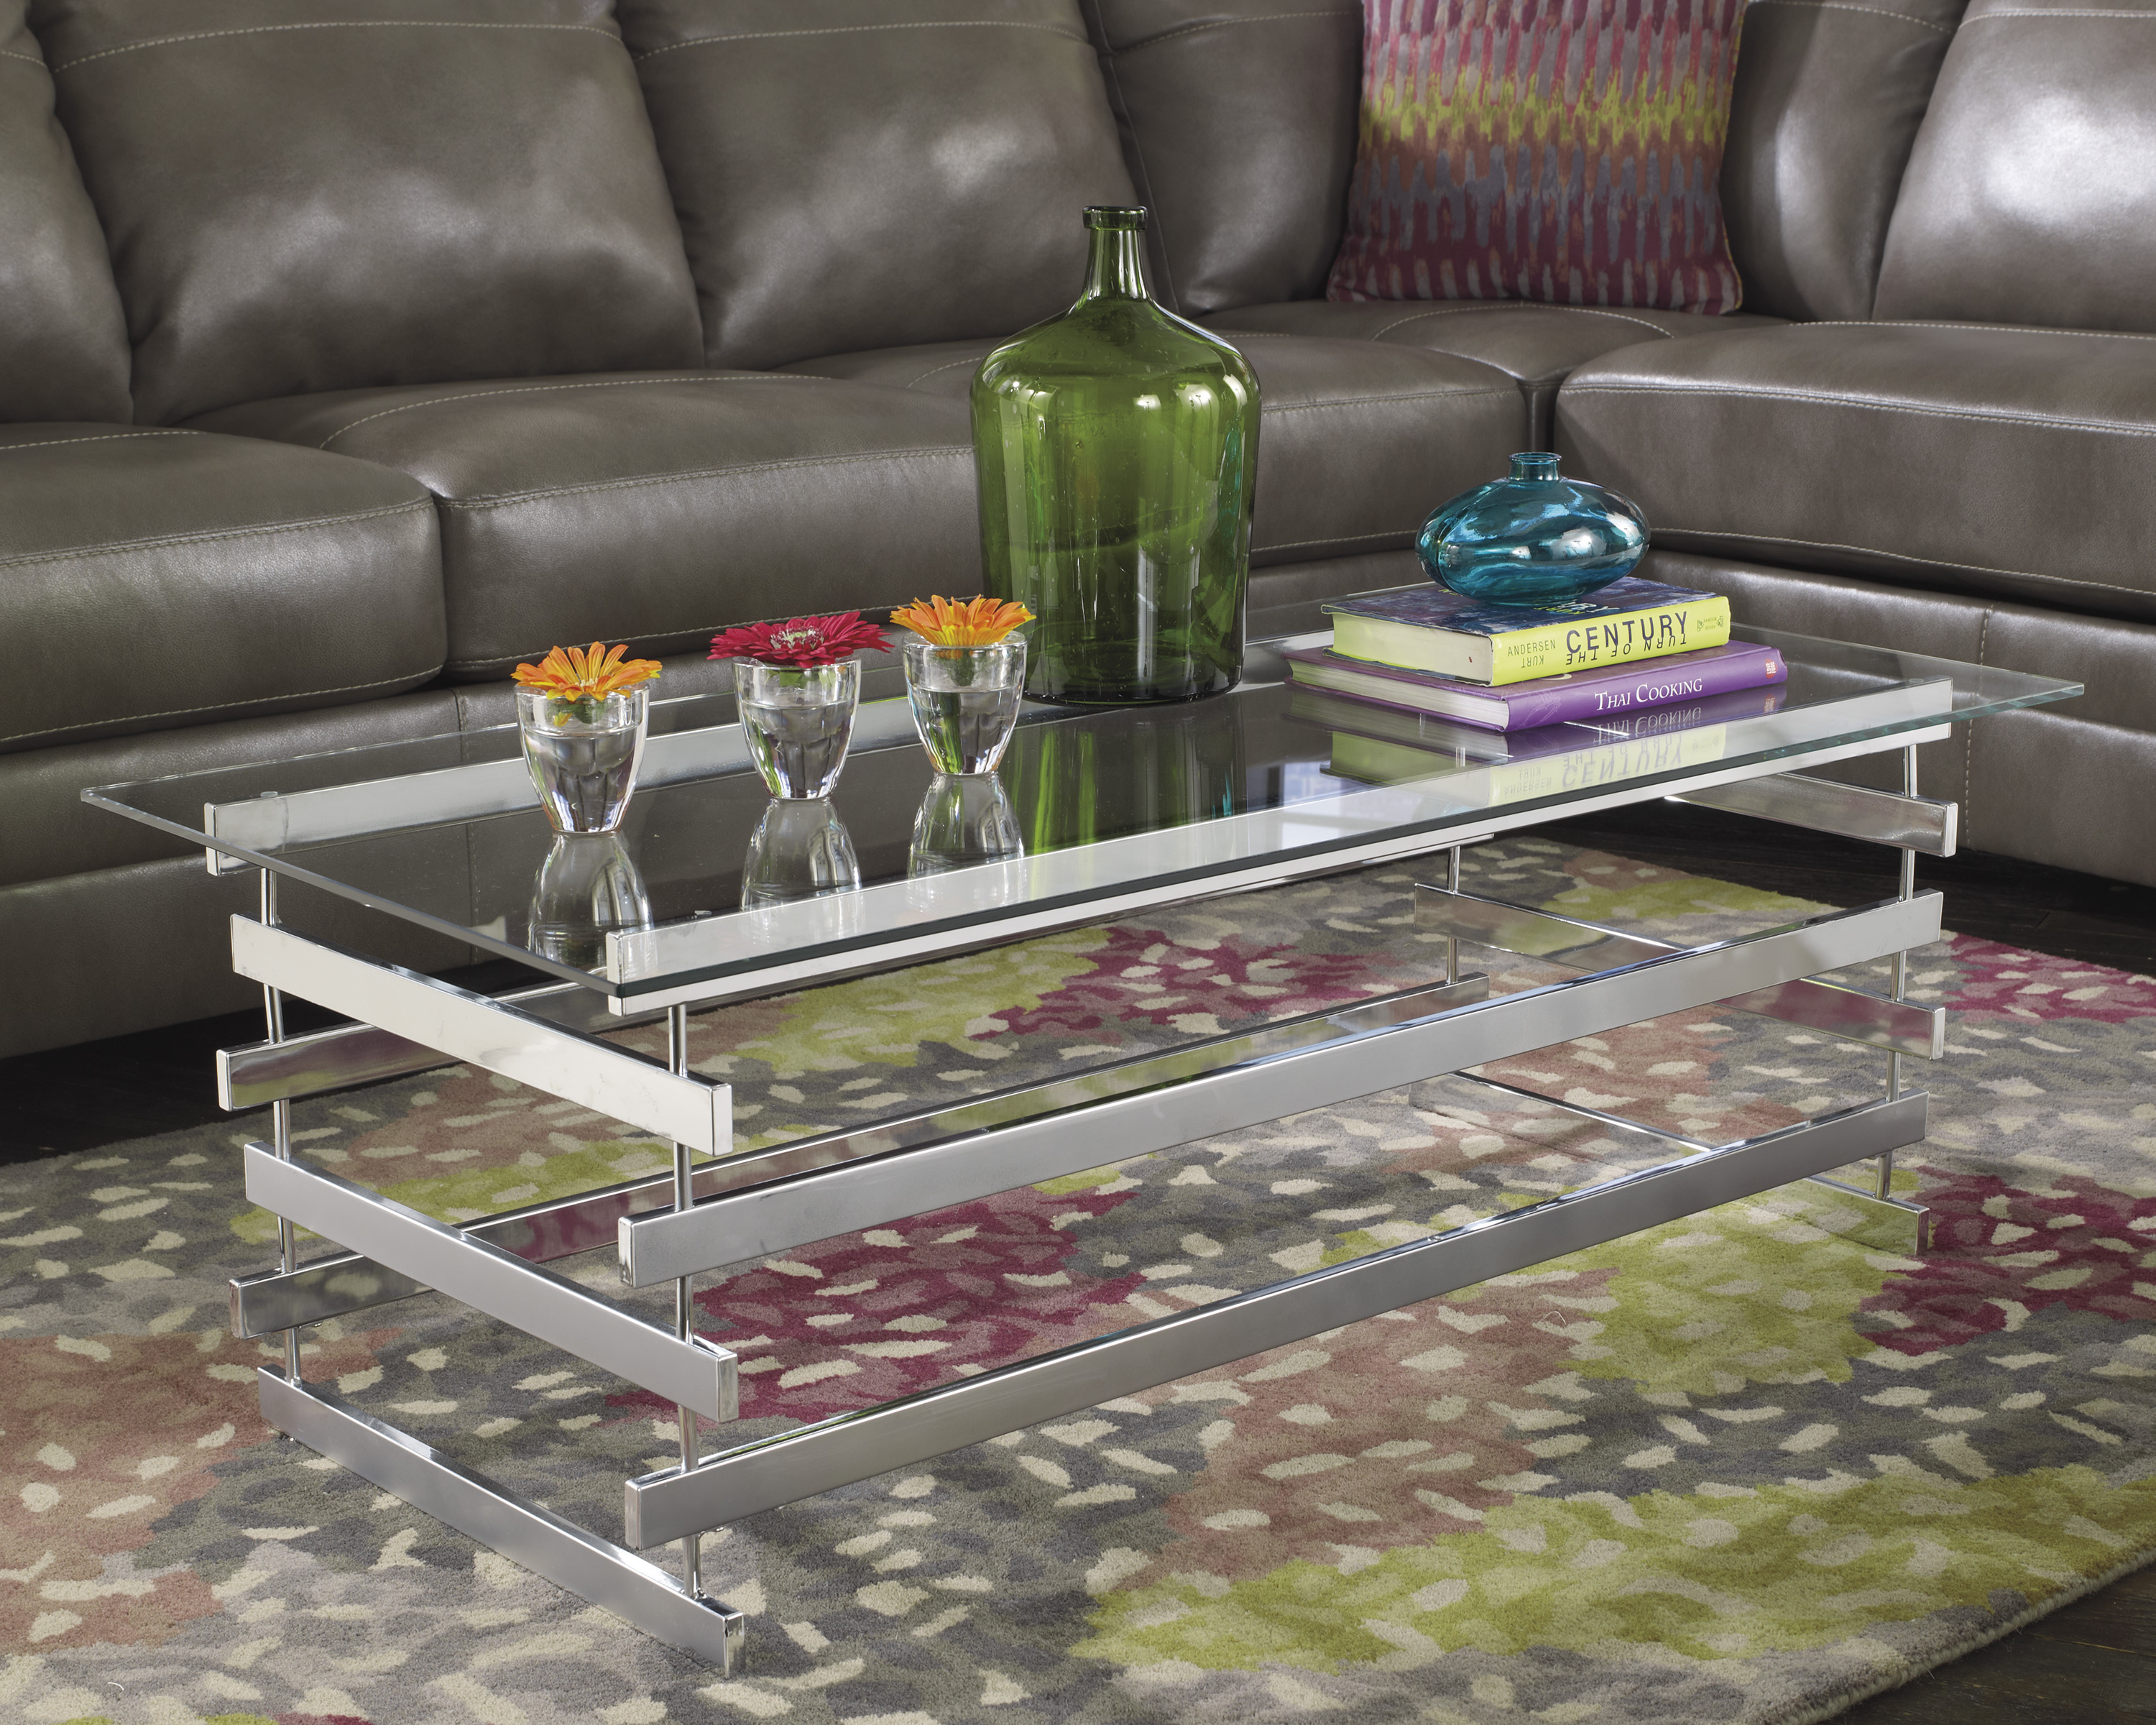 Frandelli Coffee Table Matching End Table also available